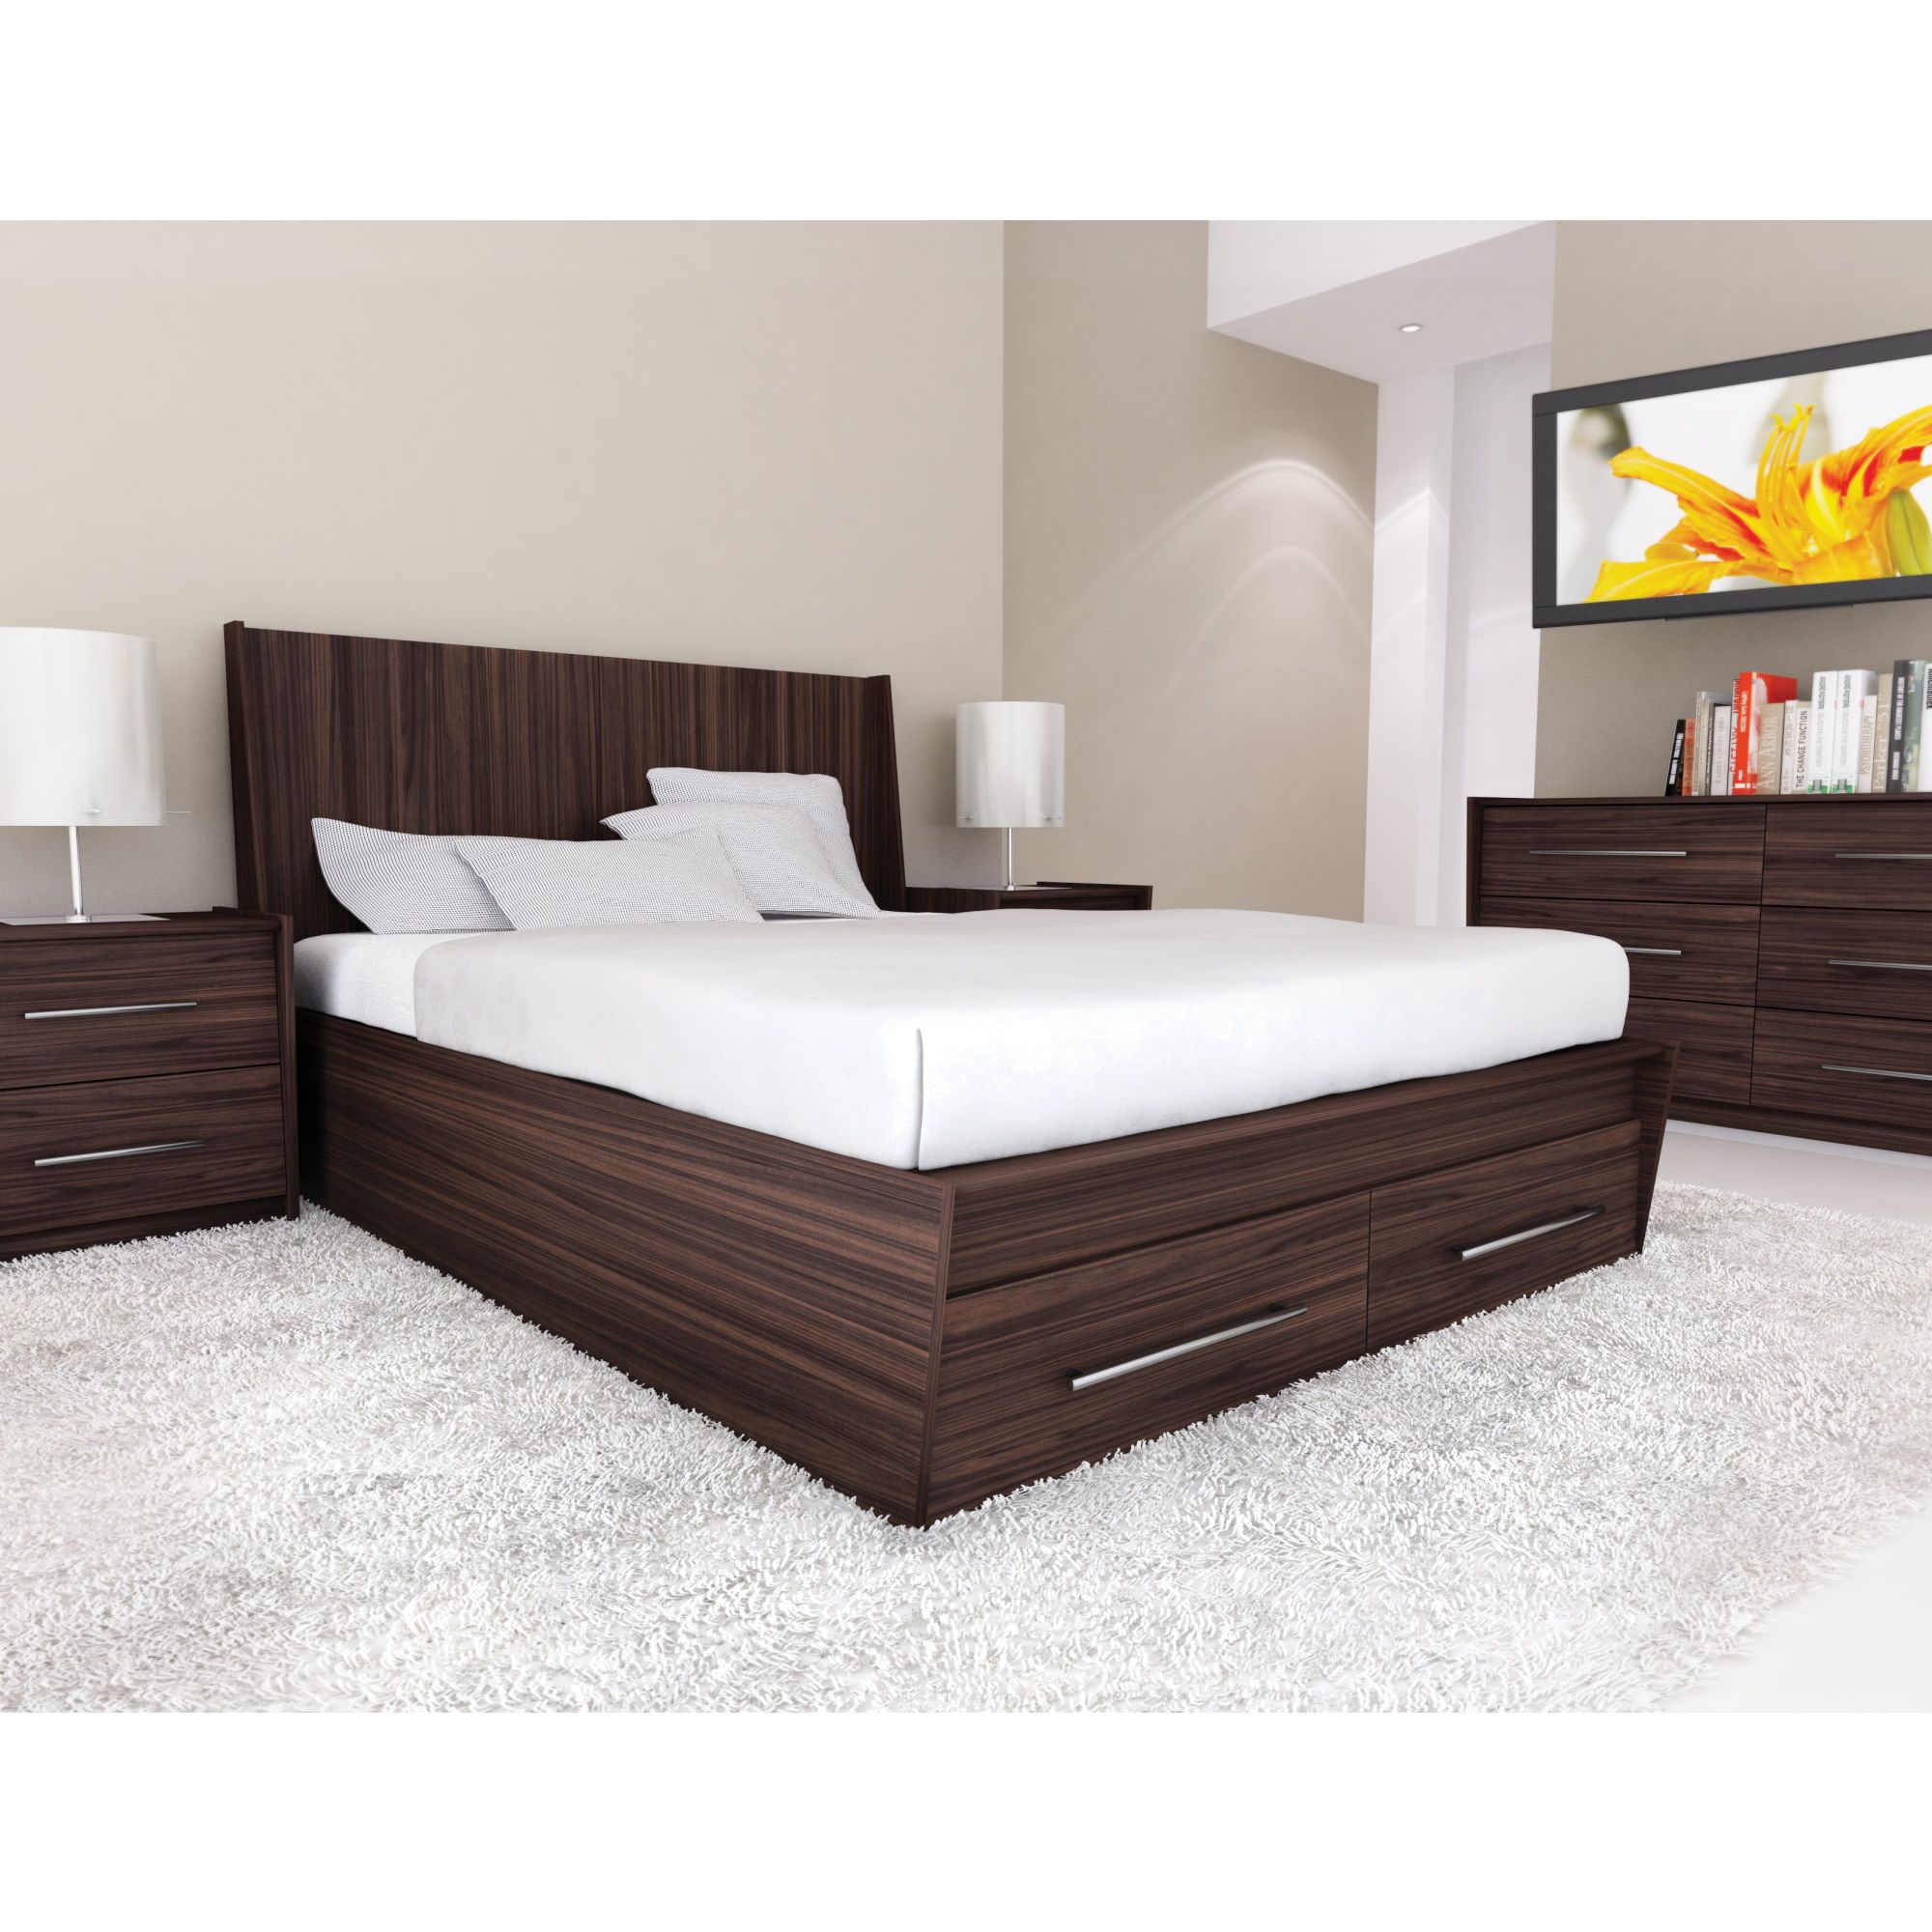 Bed designs for your comfortable bedroom interior design for Bedroom furniture design